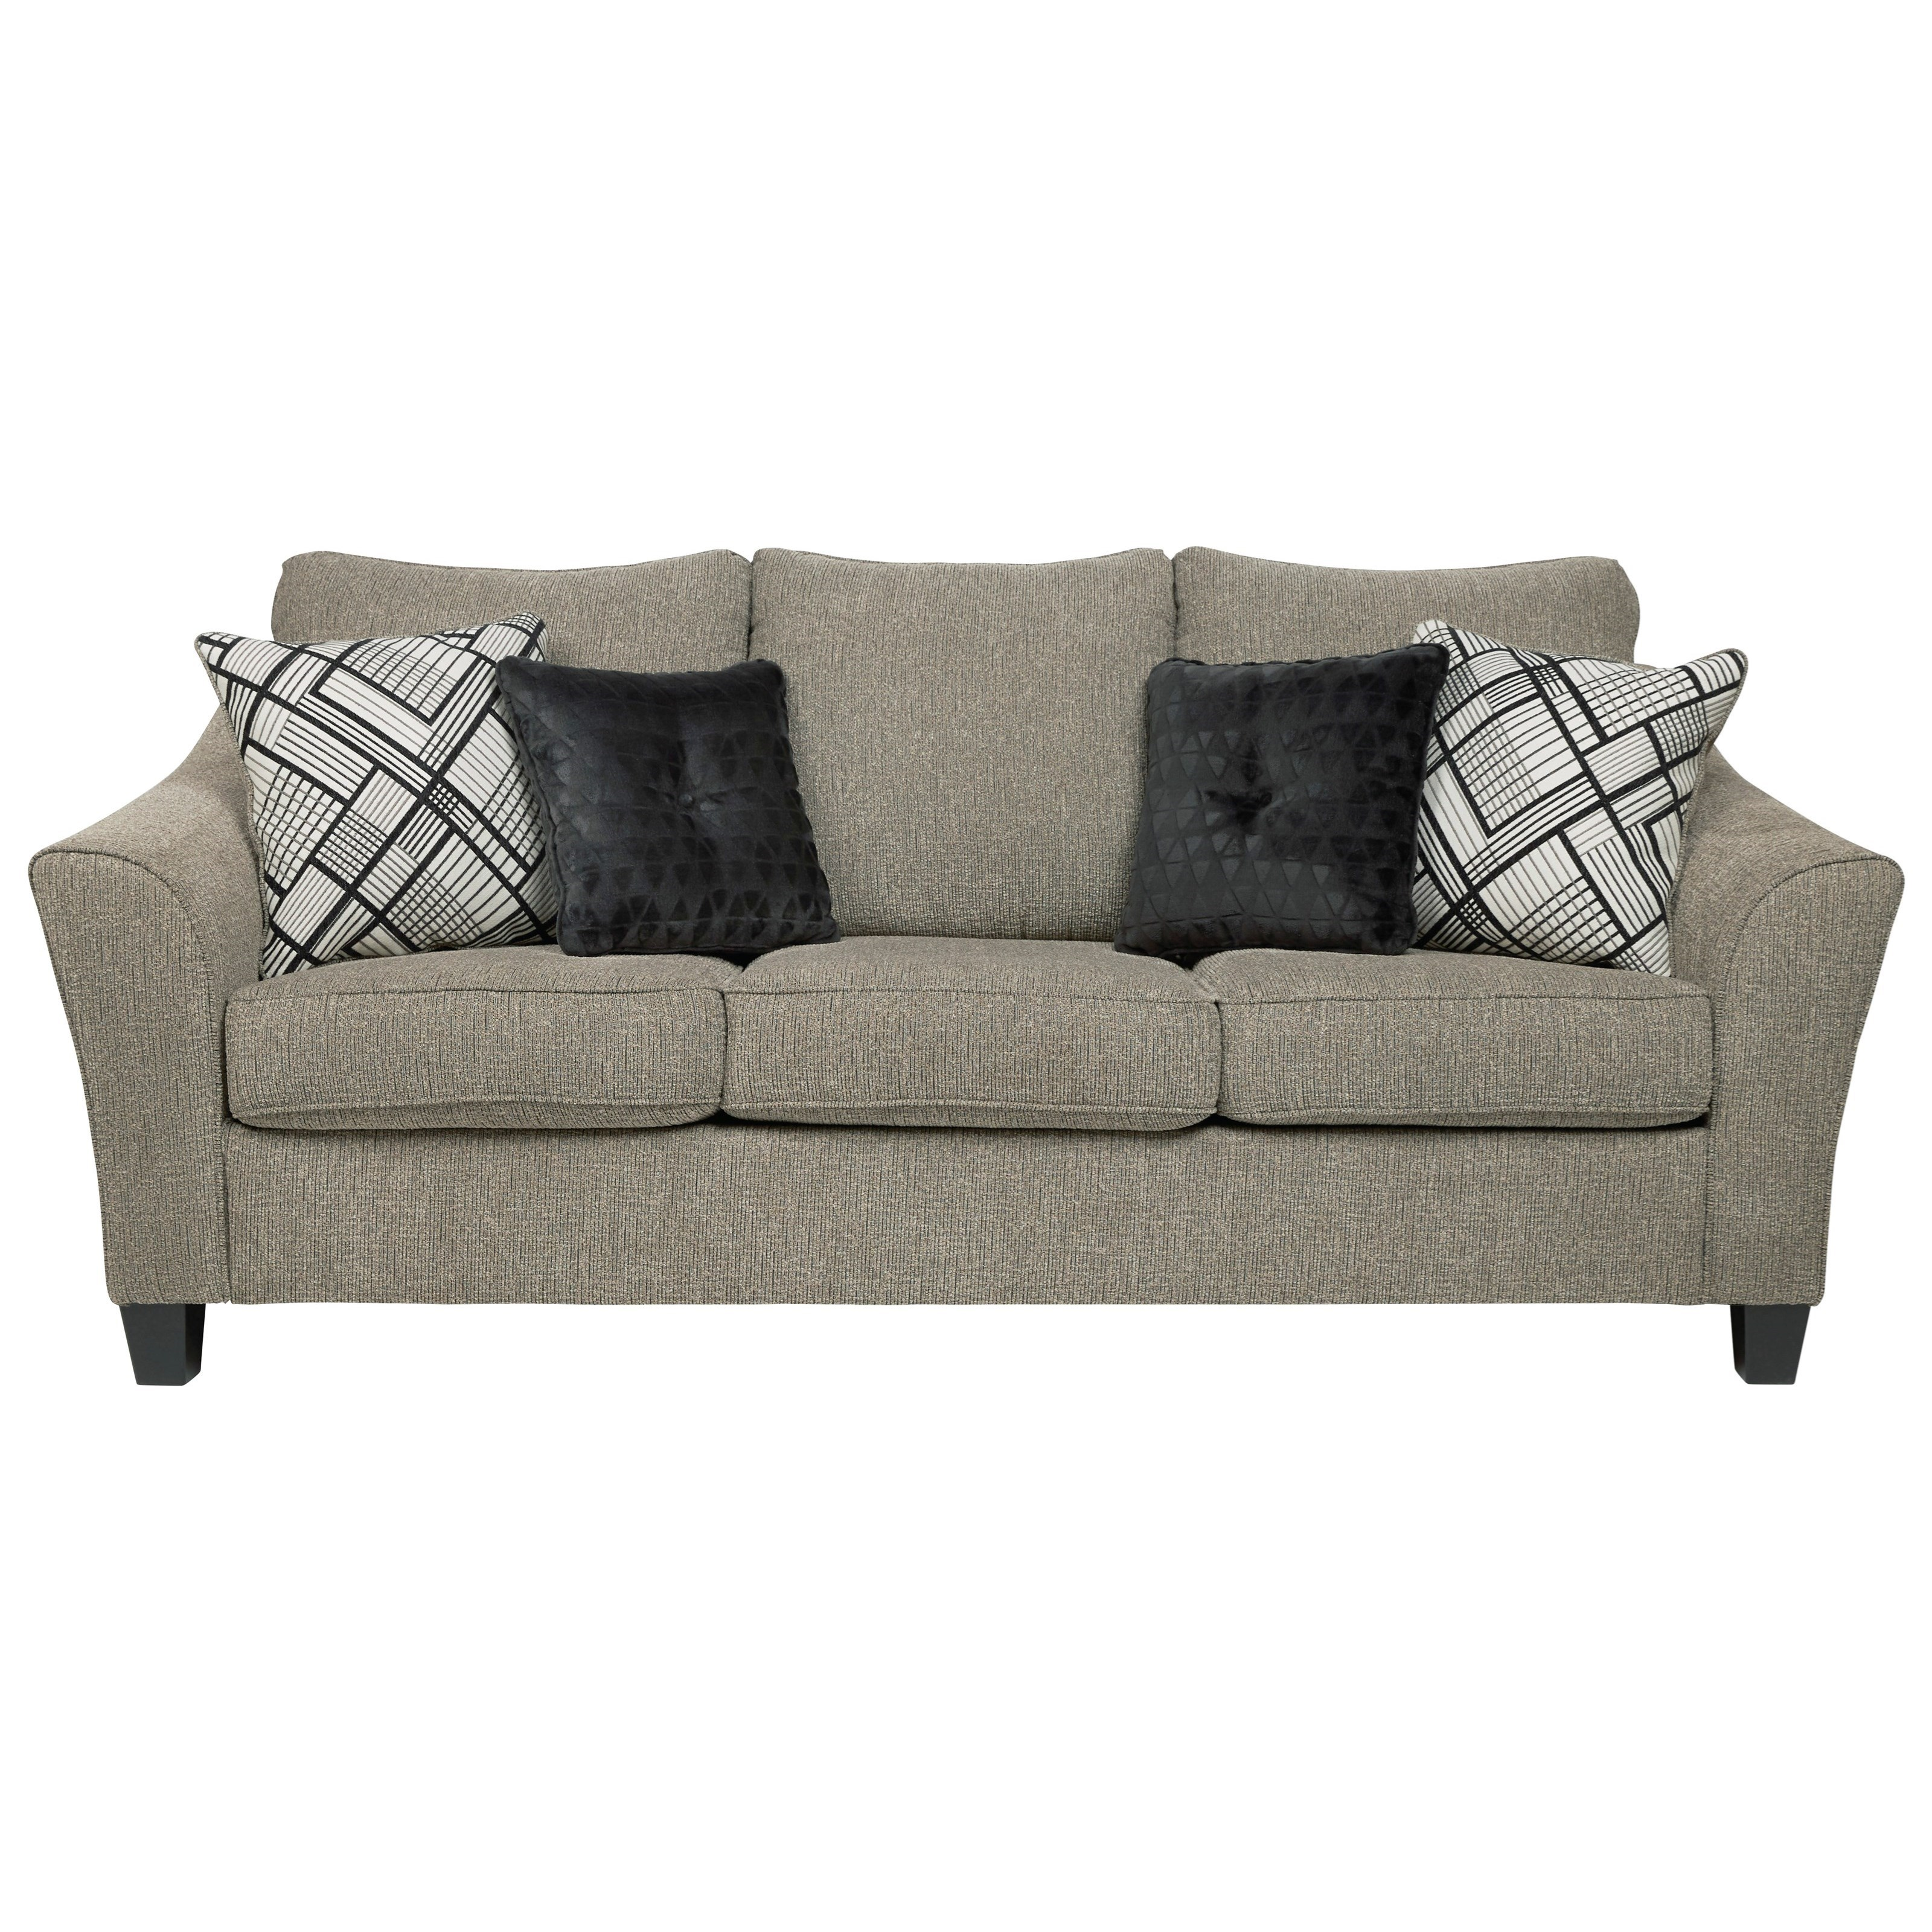 Barnesley Sofa by Benchcraft at Virginia Furniture Market